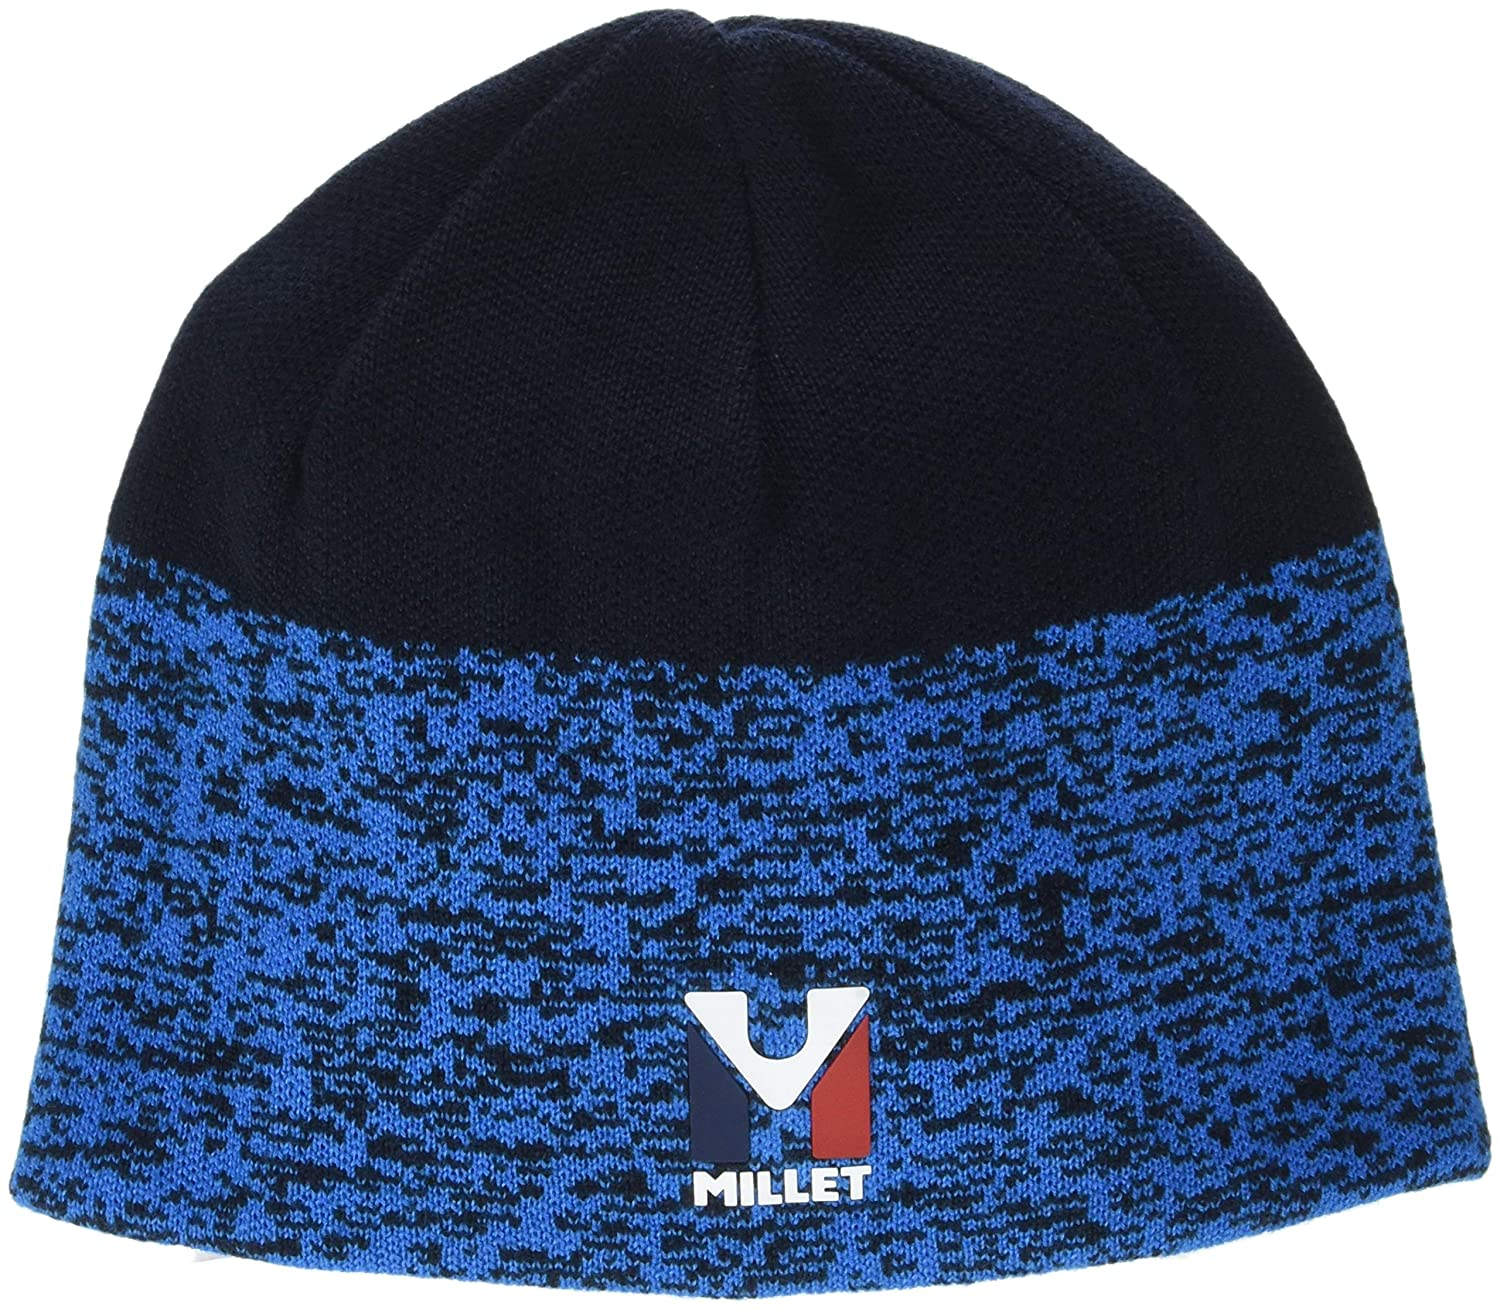 0950acd73e97c MILLET Trilogy Men s Wool Beanie Hat